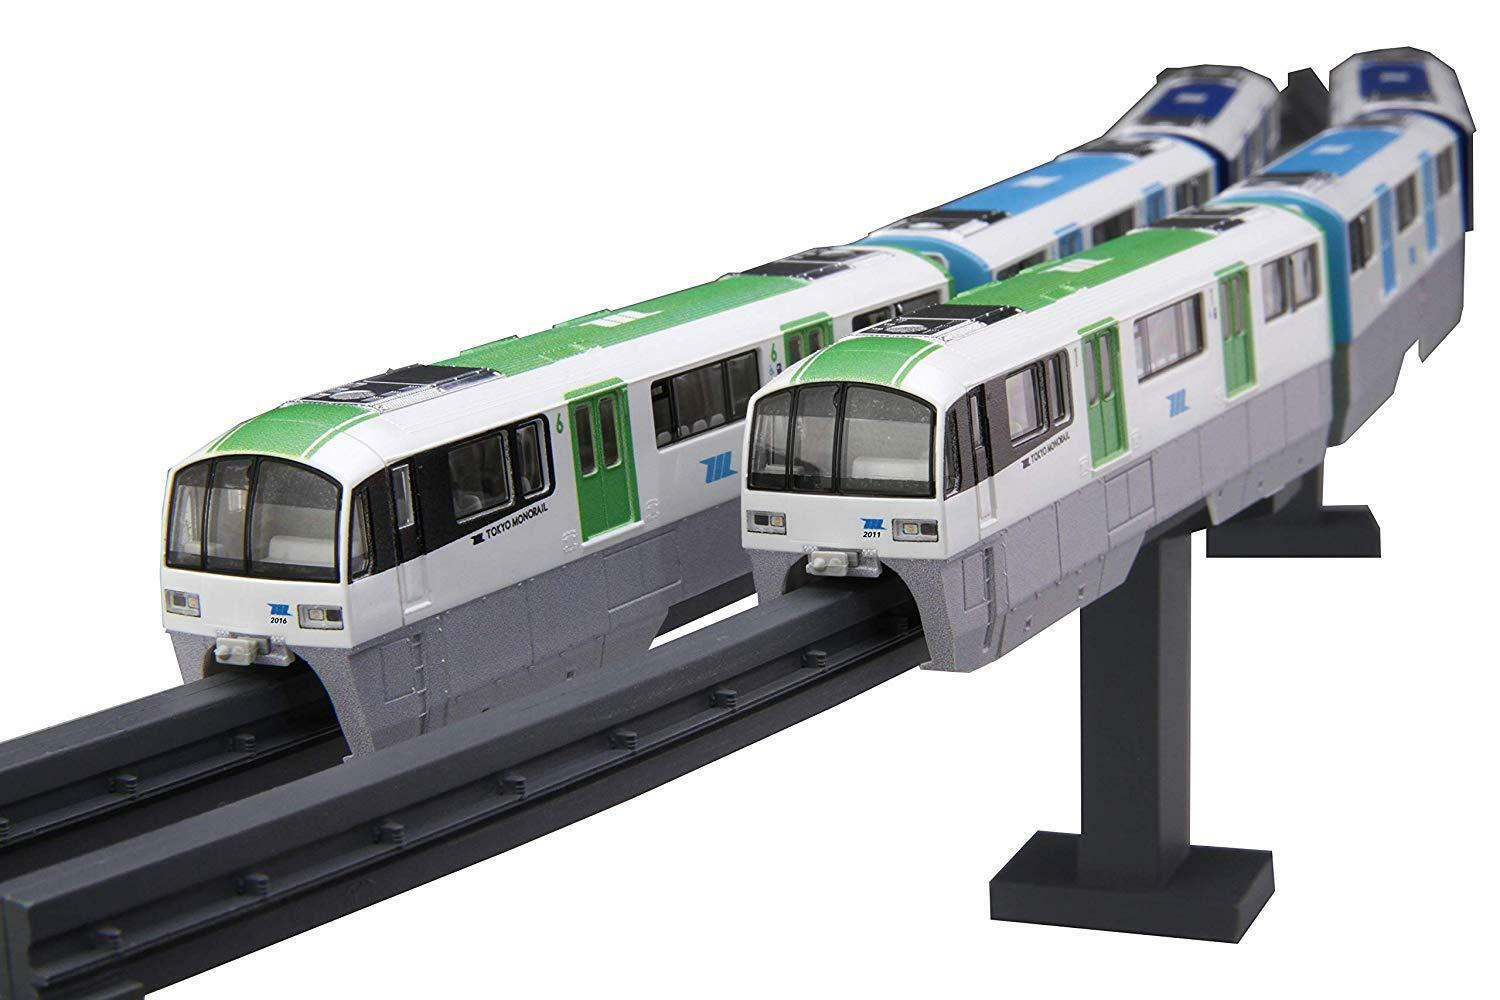 1 150 Tokyo Monorail Class 2000 New color 6Car Formation Display Model Kit STR15